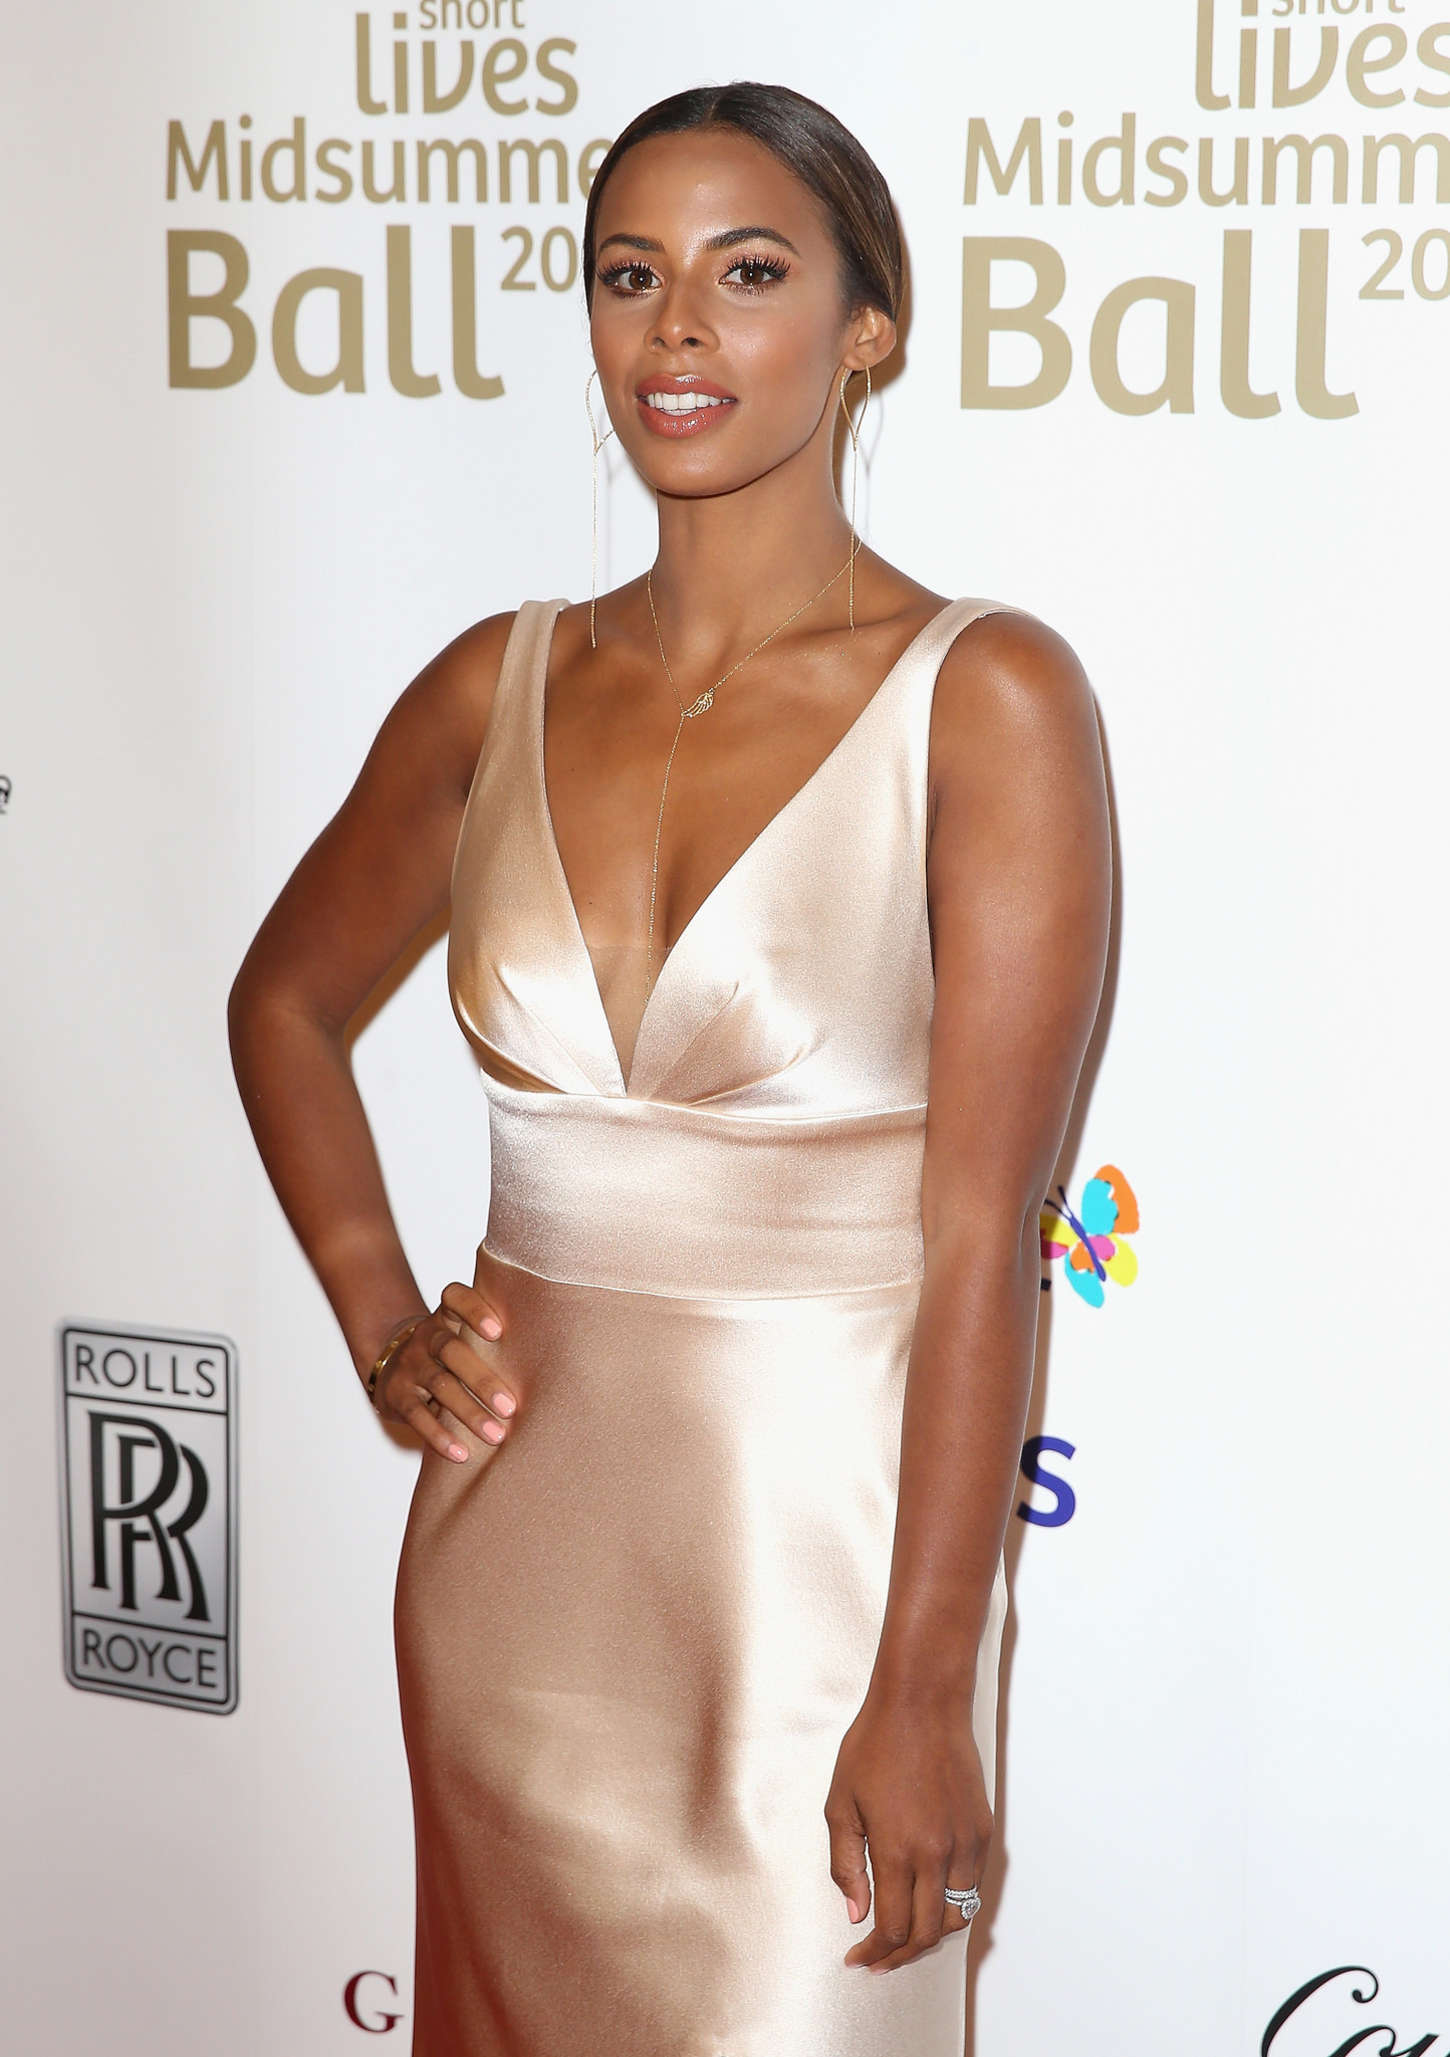 Rochelle Humes Together for Short Lives Midsummer Ball in London